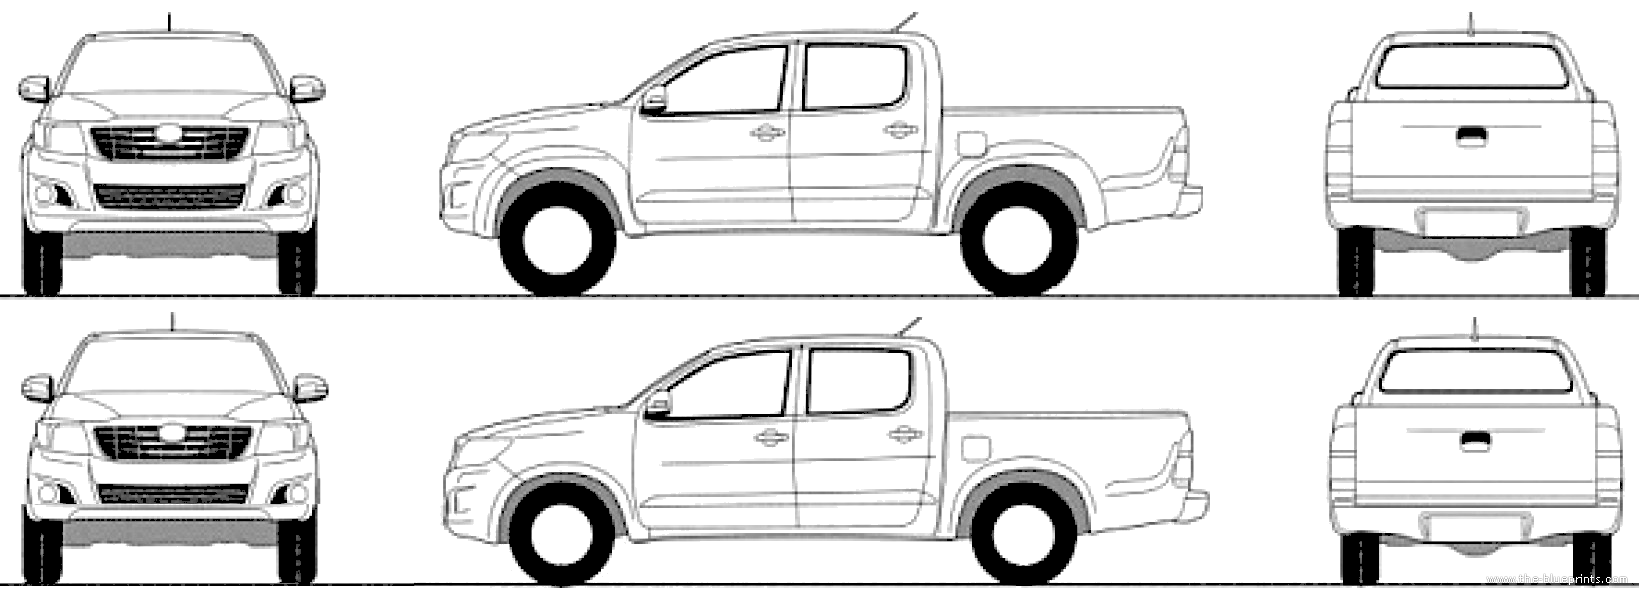 The blueprints blueprints cars toyota toyota hilux 2015 toyota hilux 2015 malvernweather Image collections